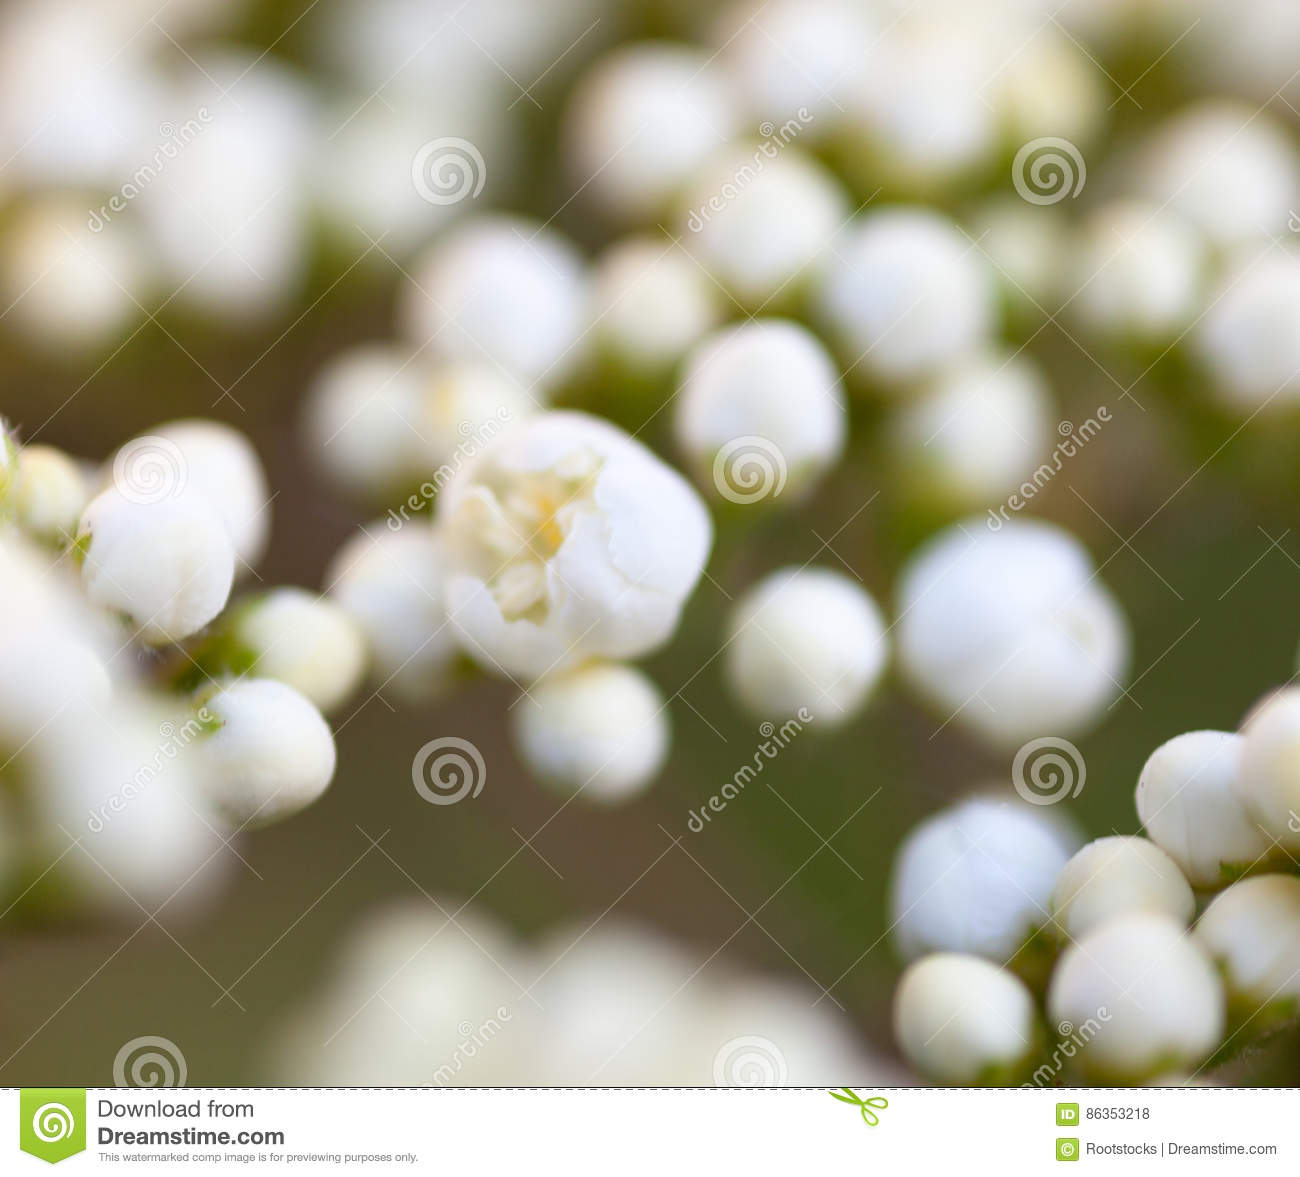 Tiny buds of rowan white flowers stock photo image 86353218 tiny buds of rowan white flowers dhlflorist Image collections